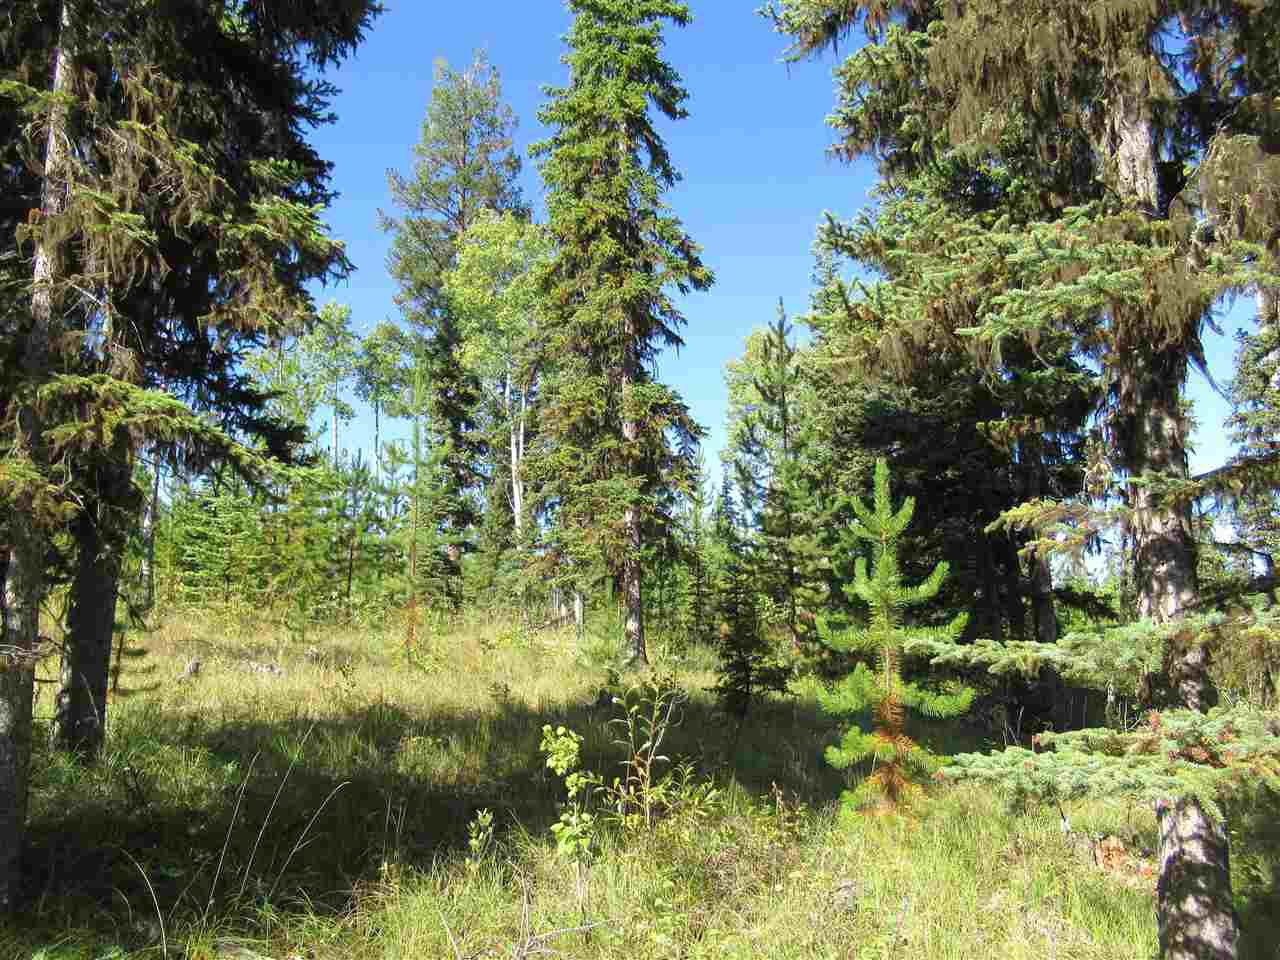 Photo 6: Photos: DL 6426 TONKA Road: 150 Mile House Land for sale (Williams Lake (Zone 27))  : MLS®# R2497364